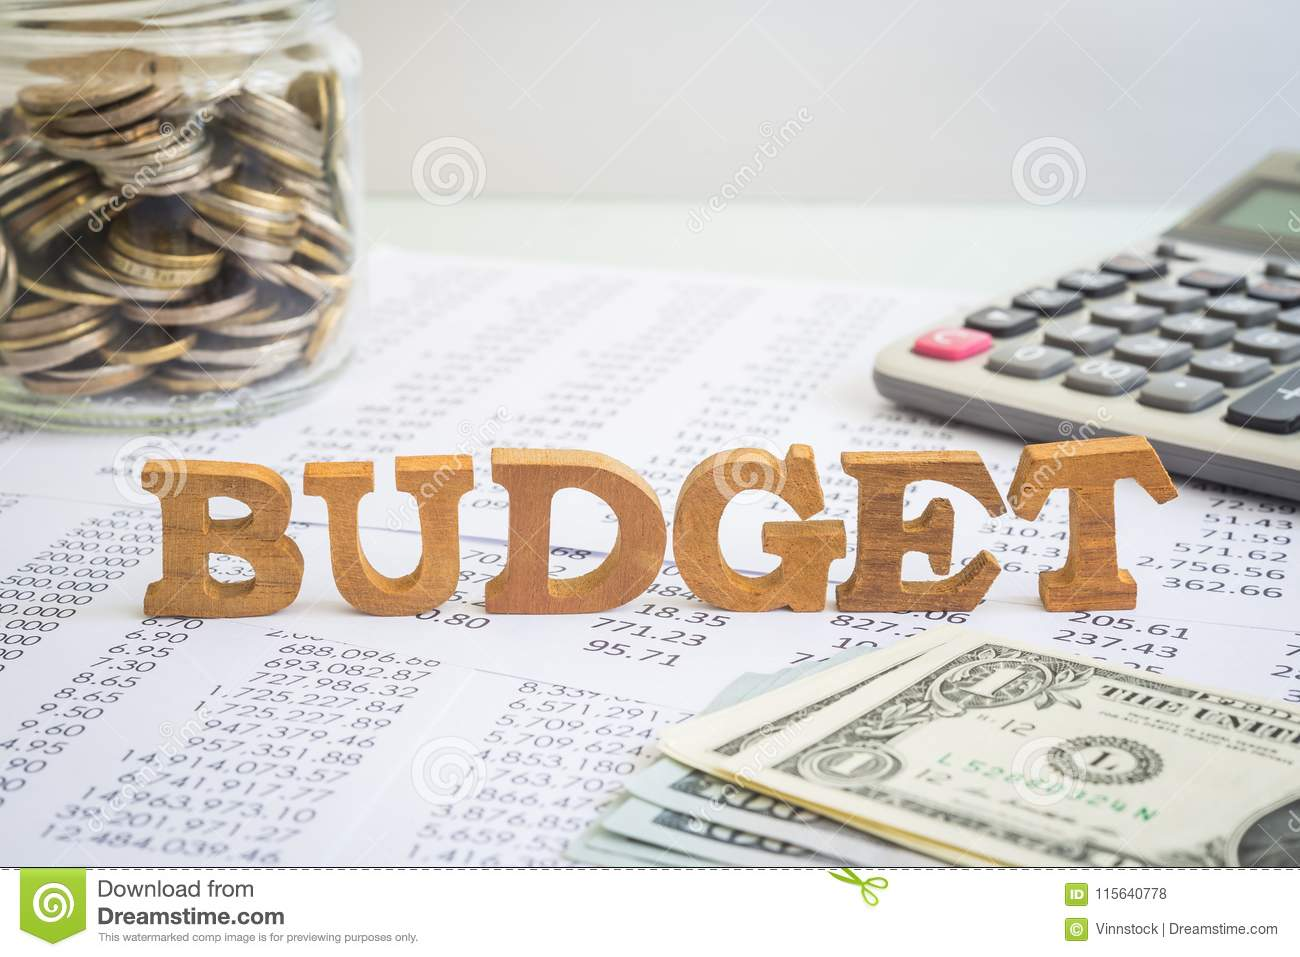 Budget and financial management for business project.